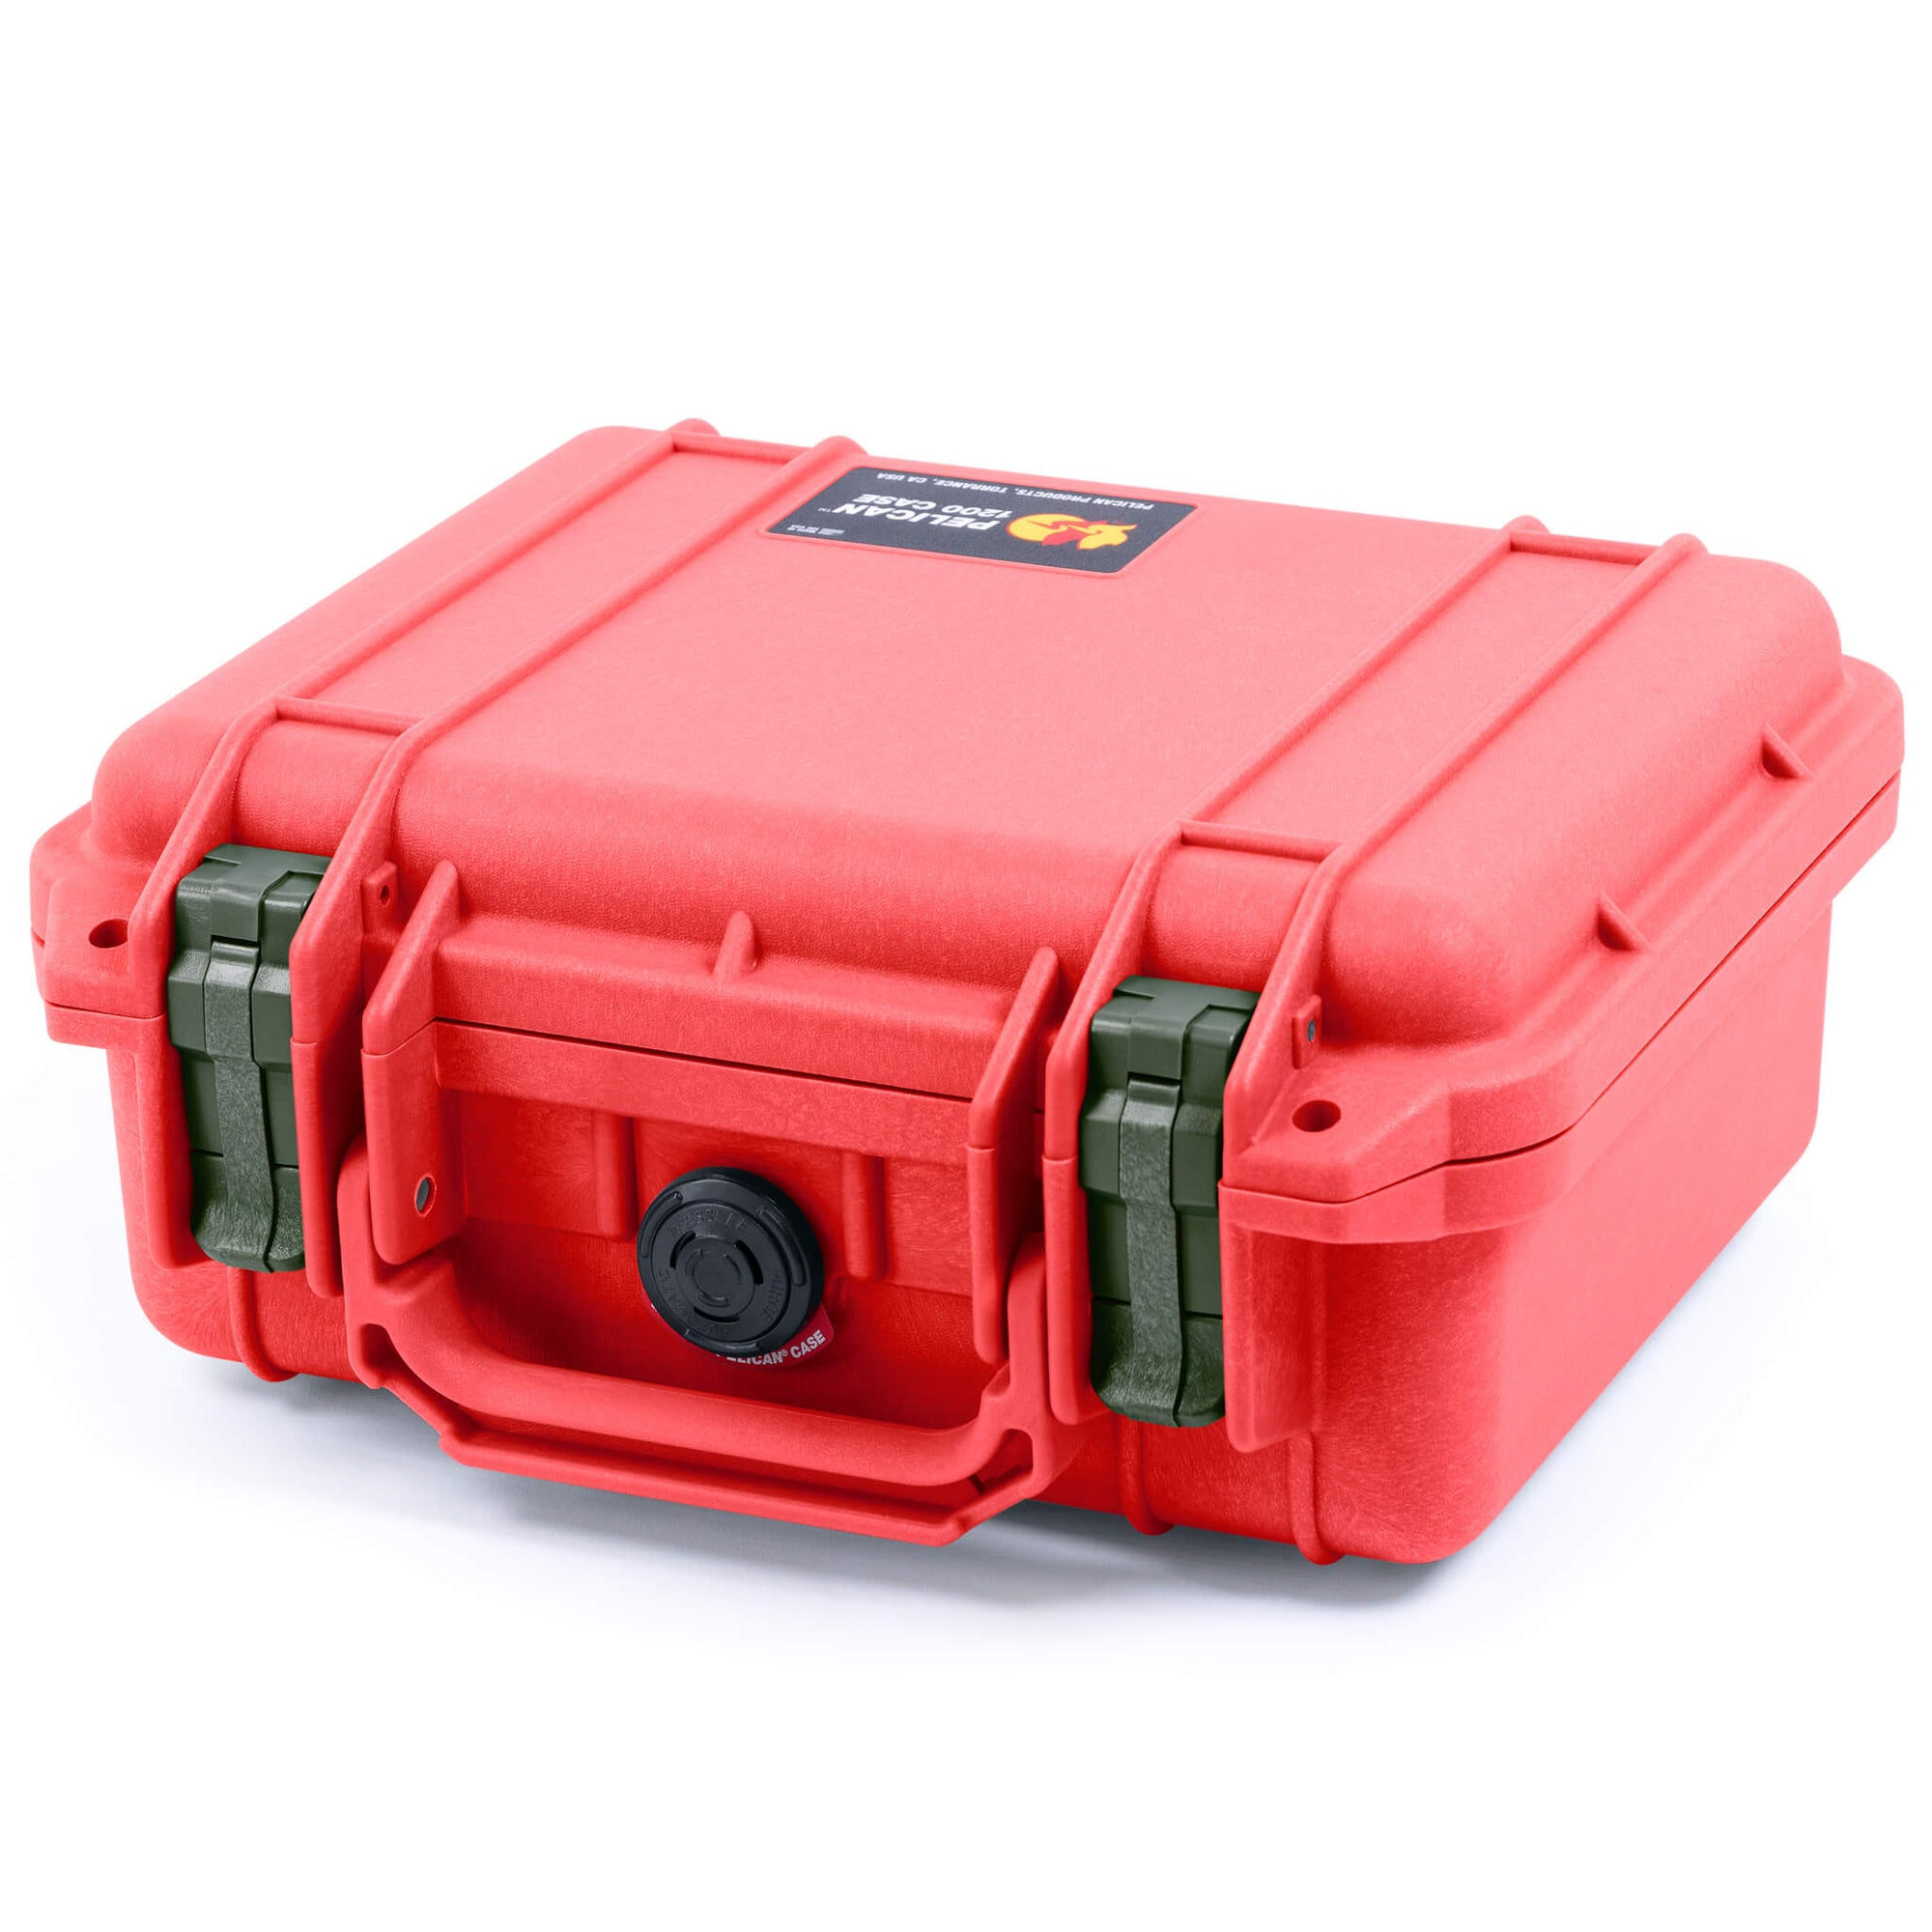 Pelican 1200 Case, Red with OD Green Handle & Latches - Pelican Color Case